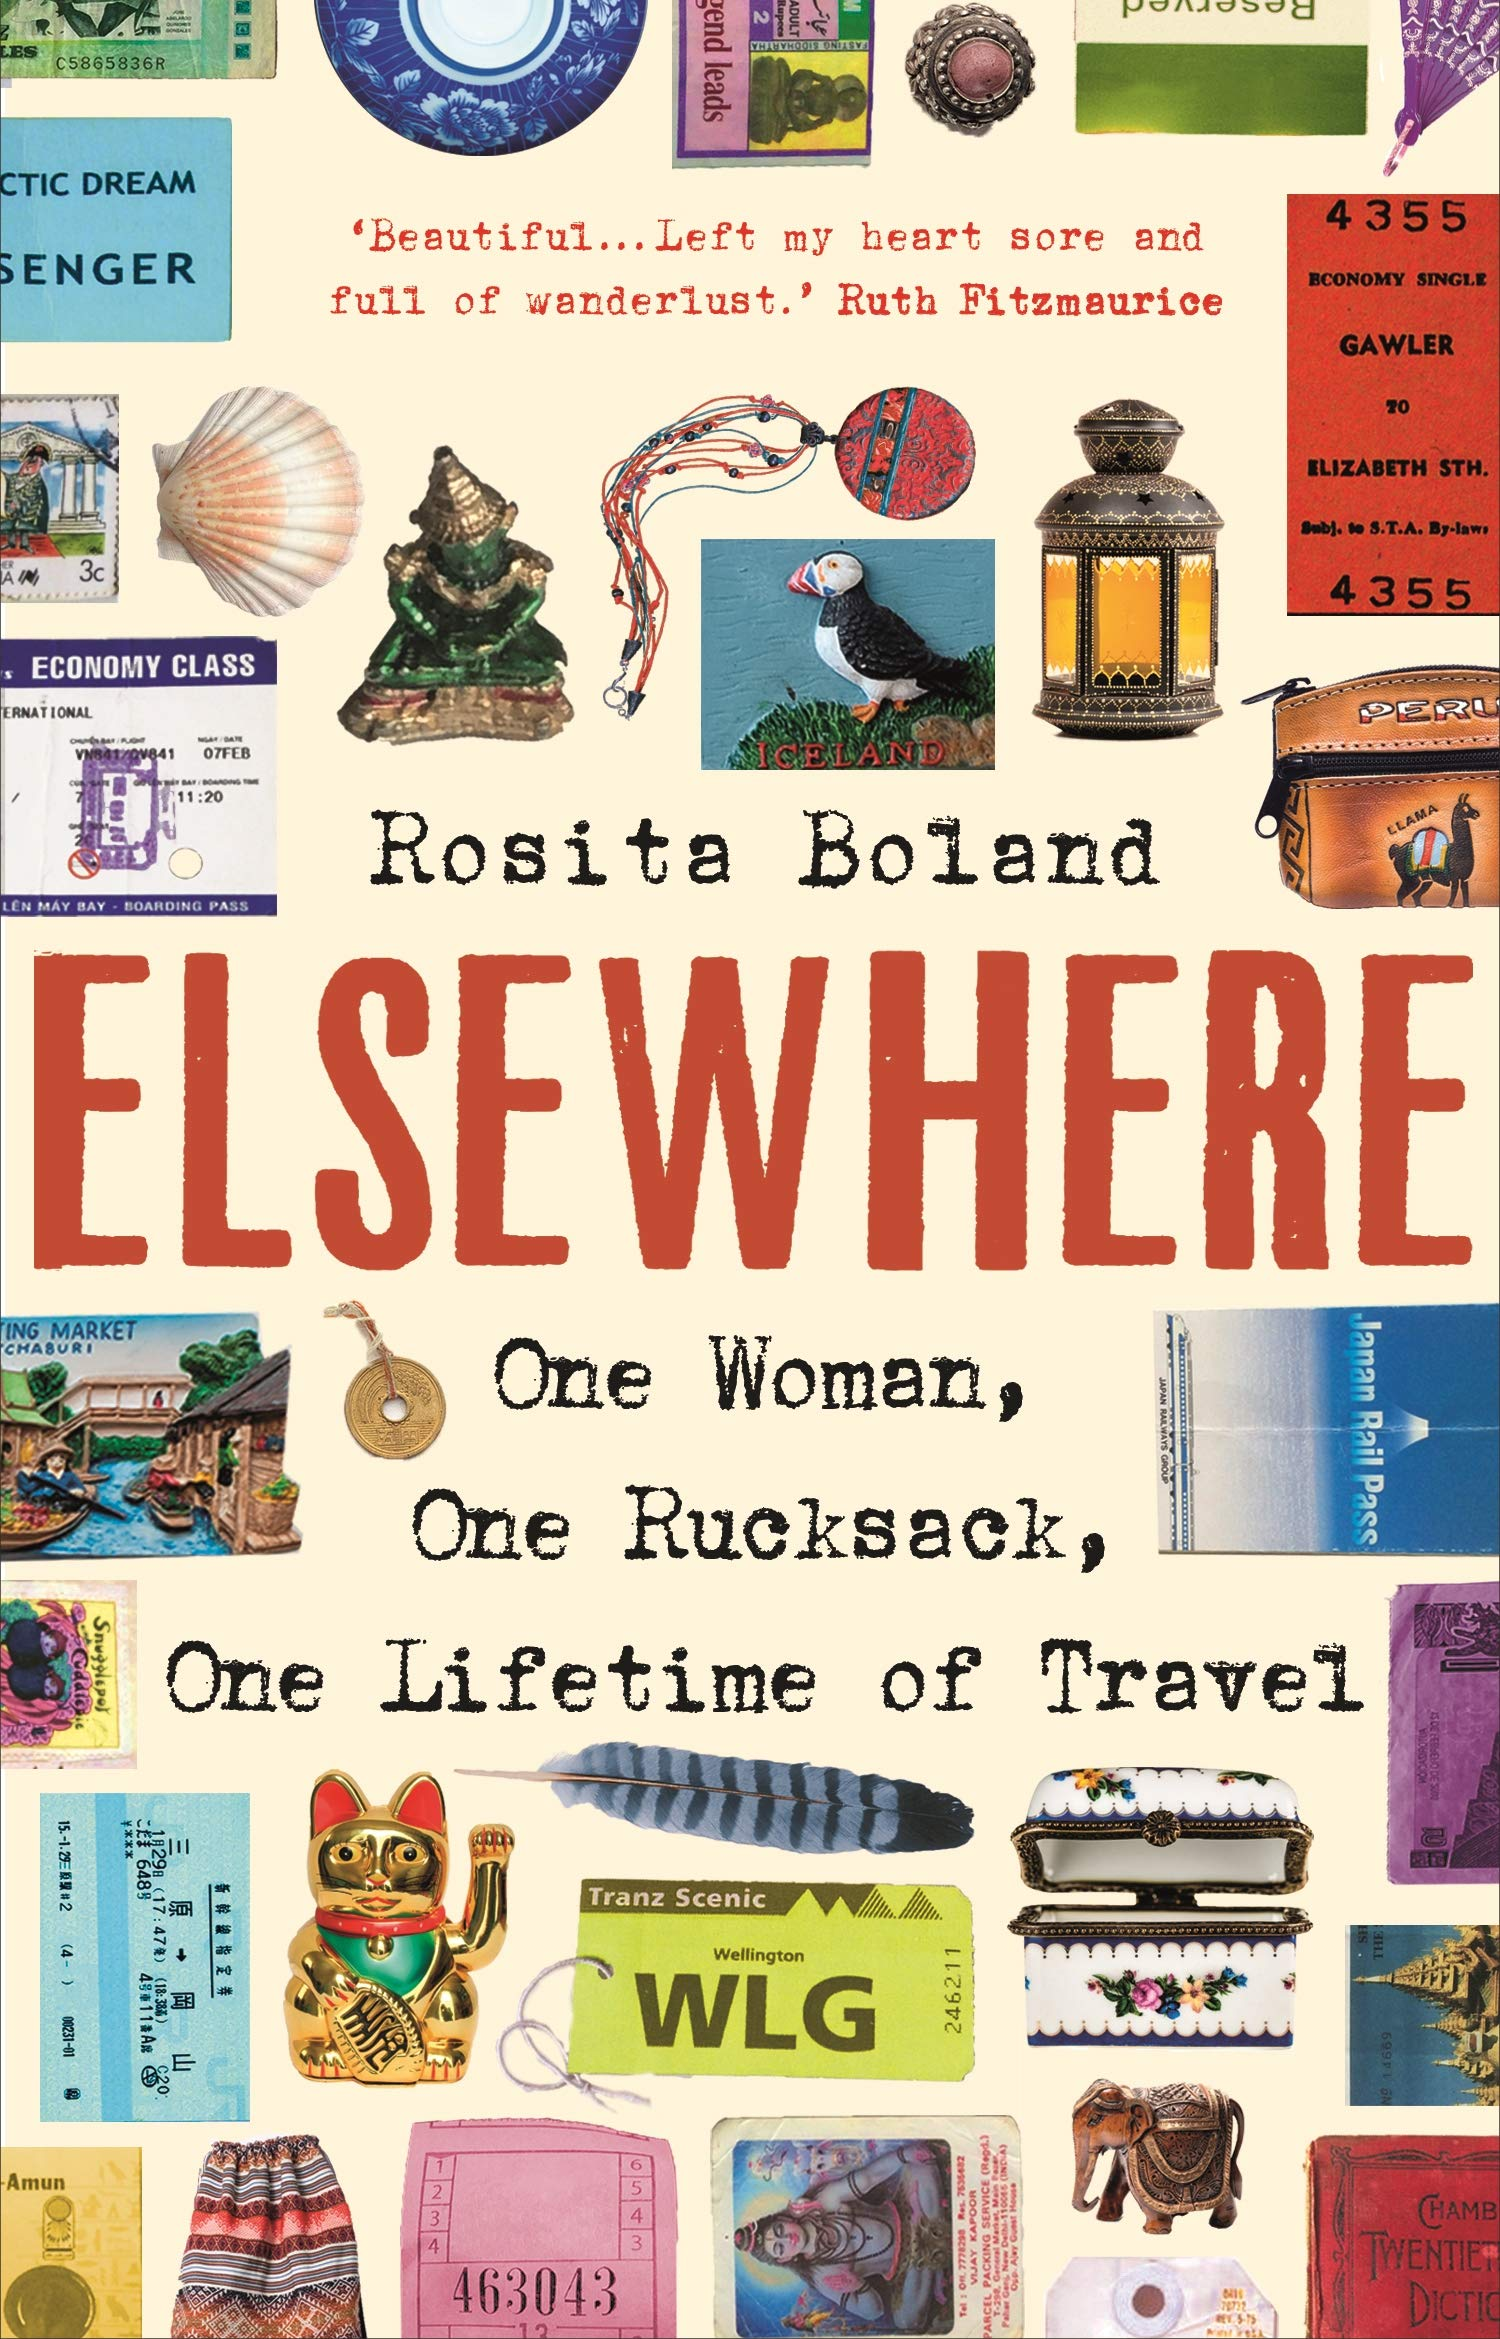 Elsewhere: one woman, one rucksack, one lifetime of travel cover